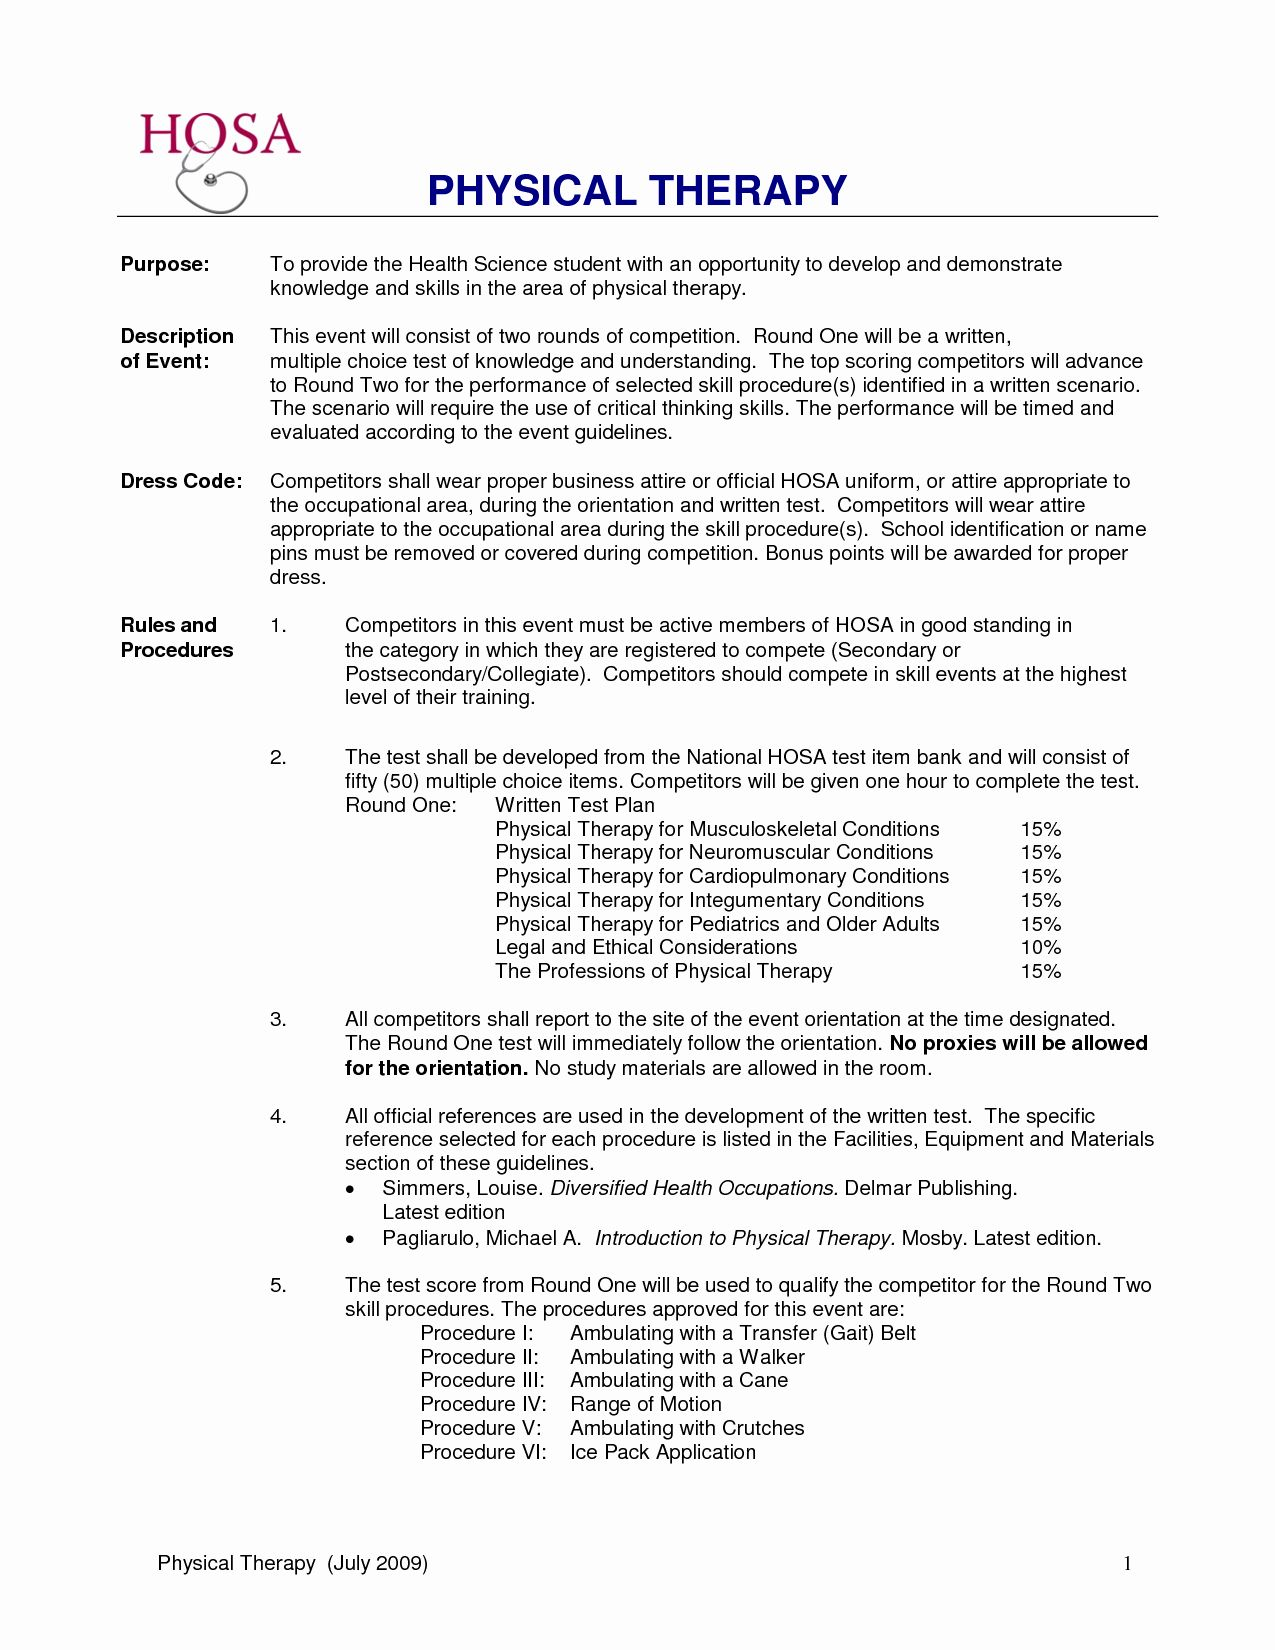 Physical Therapy Student Resume Lovely Good Physical Therapy Technician Resume Sample Sam Physical Therapist Assistant Physical Therapy Student Resume Examples